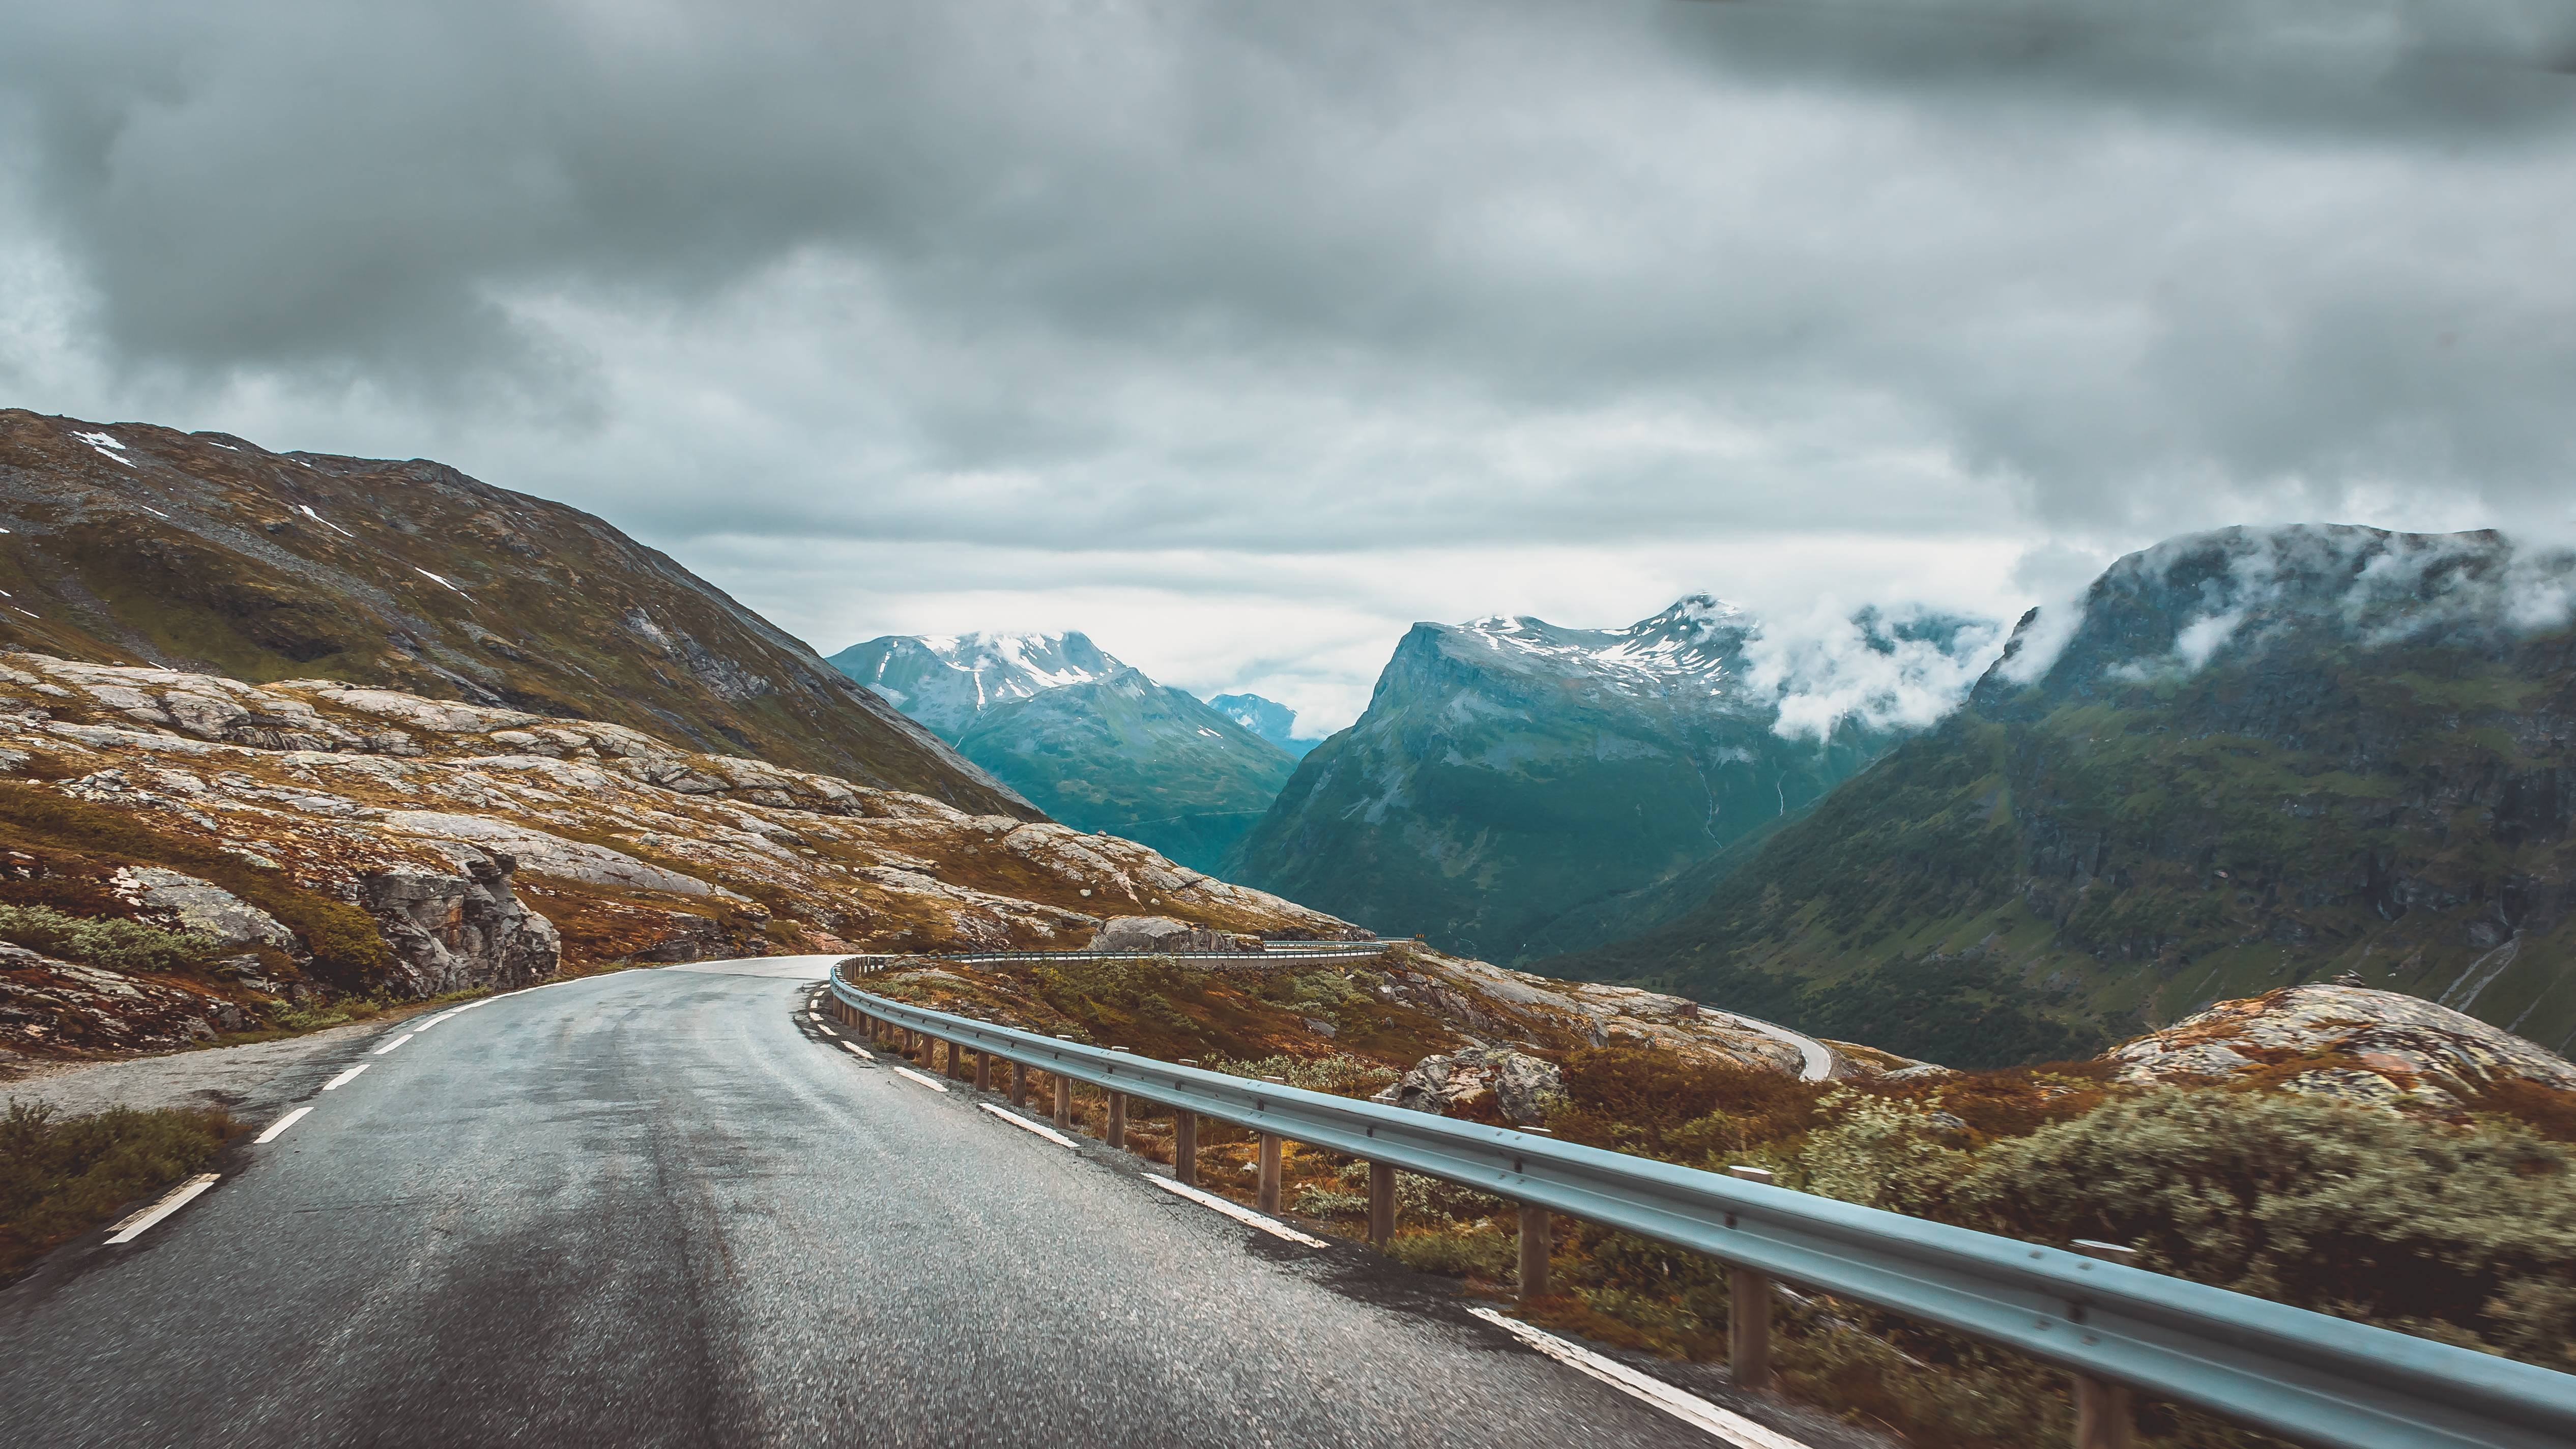 Jotunheimen 4k Wallpapers For Your Desktop Or Mobile Screen Free And Easy To Download